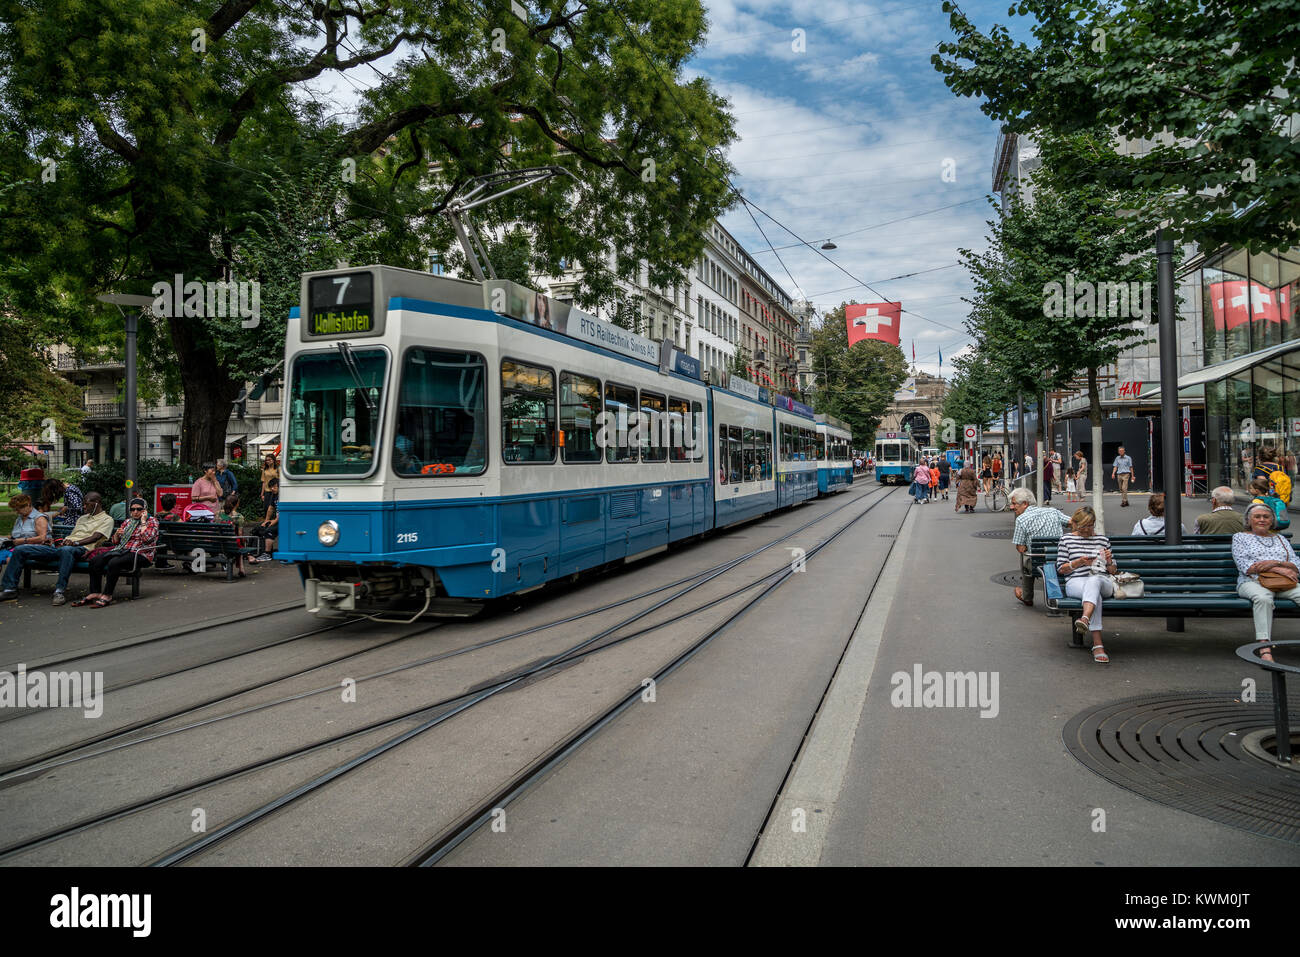 Tram in Bahnhofstrasse in Zurich, Switzerland - Stock Image